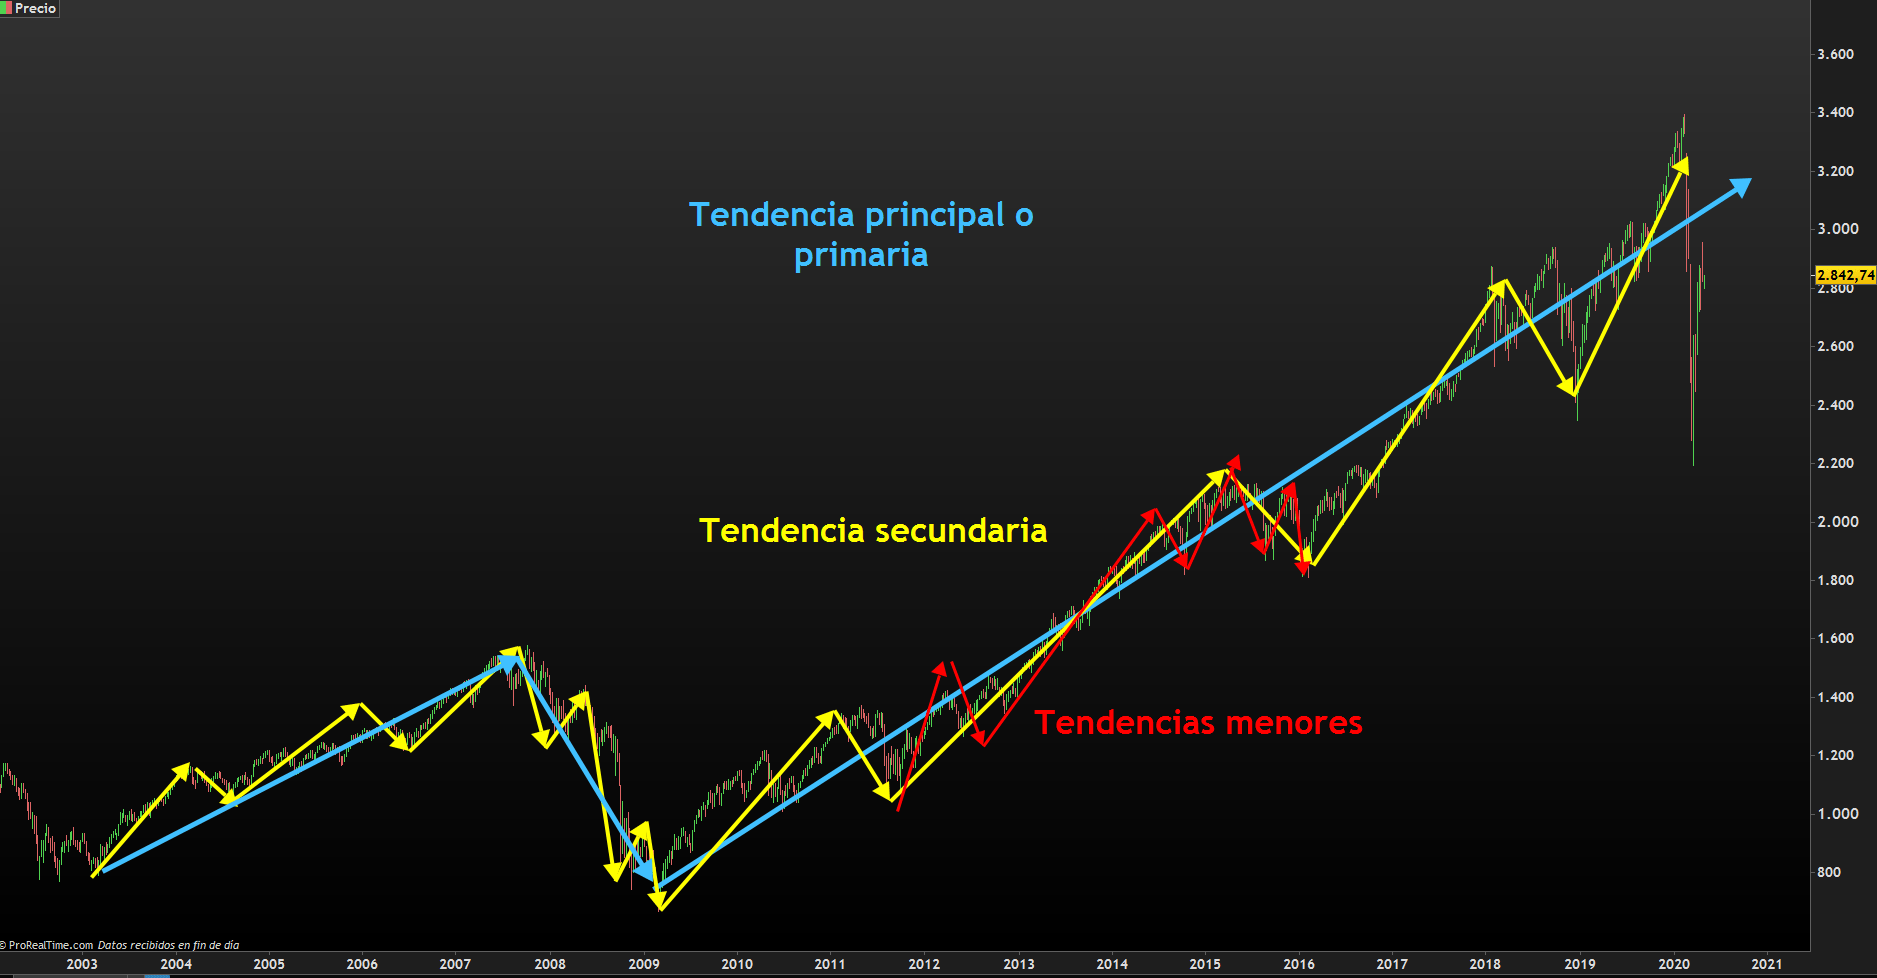 TENDENCIAS DE DOW